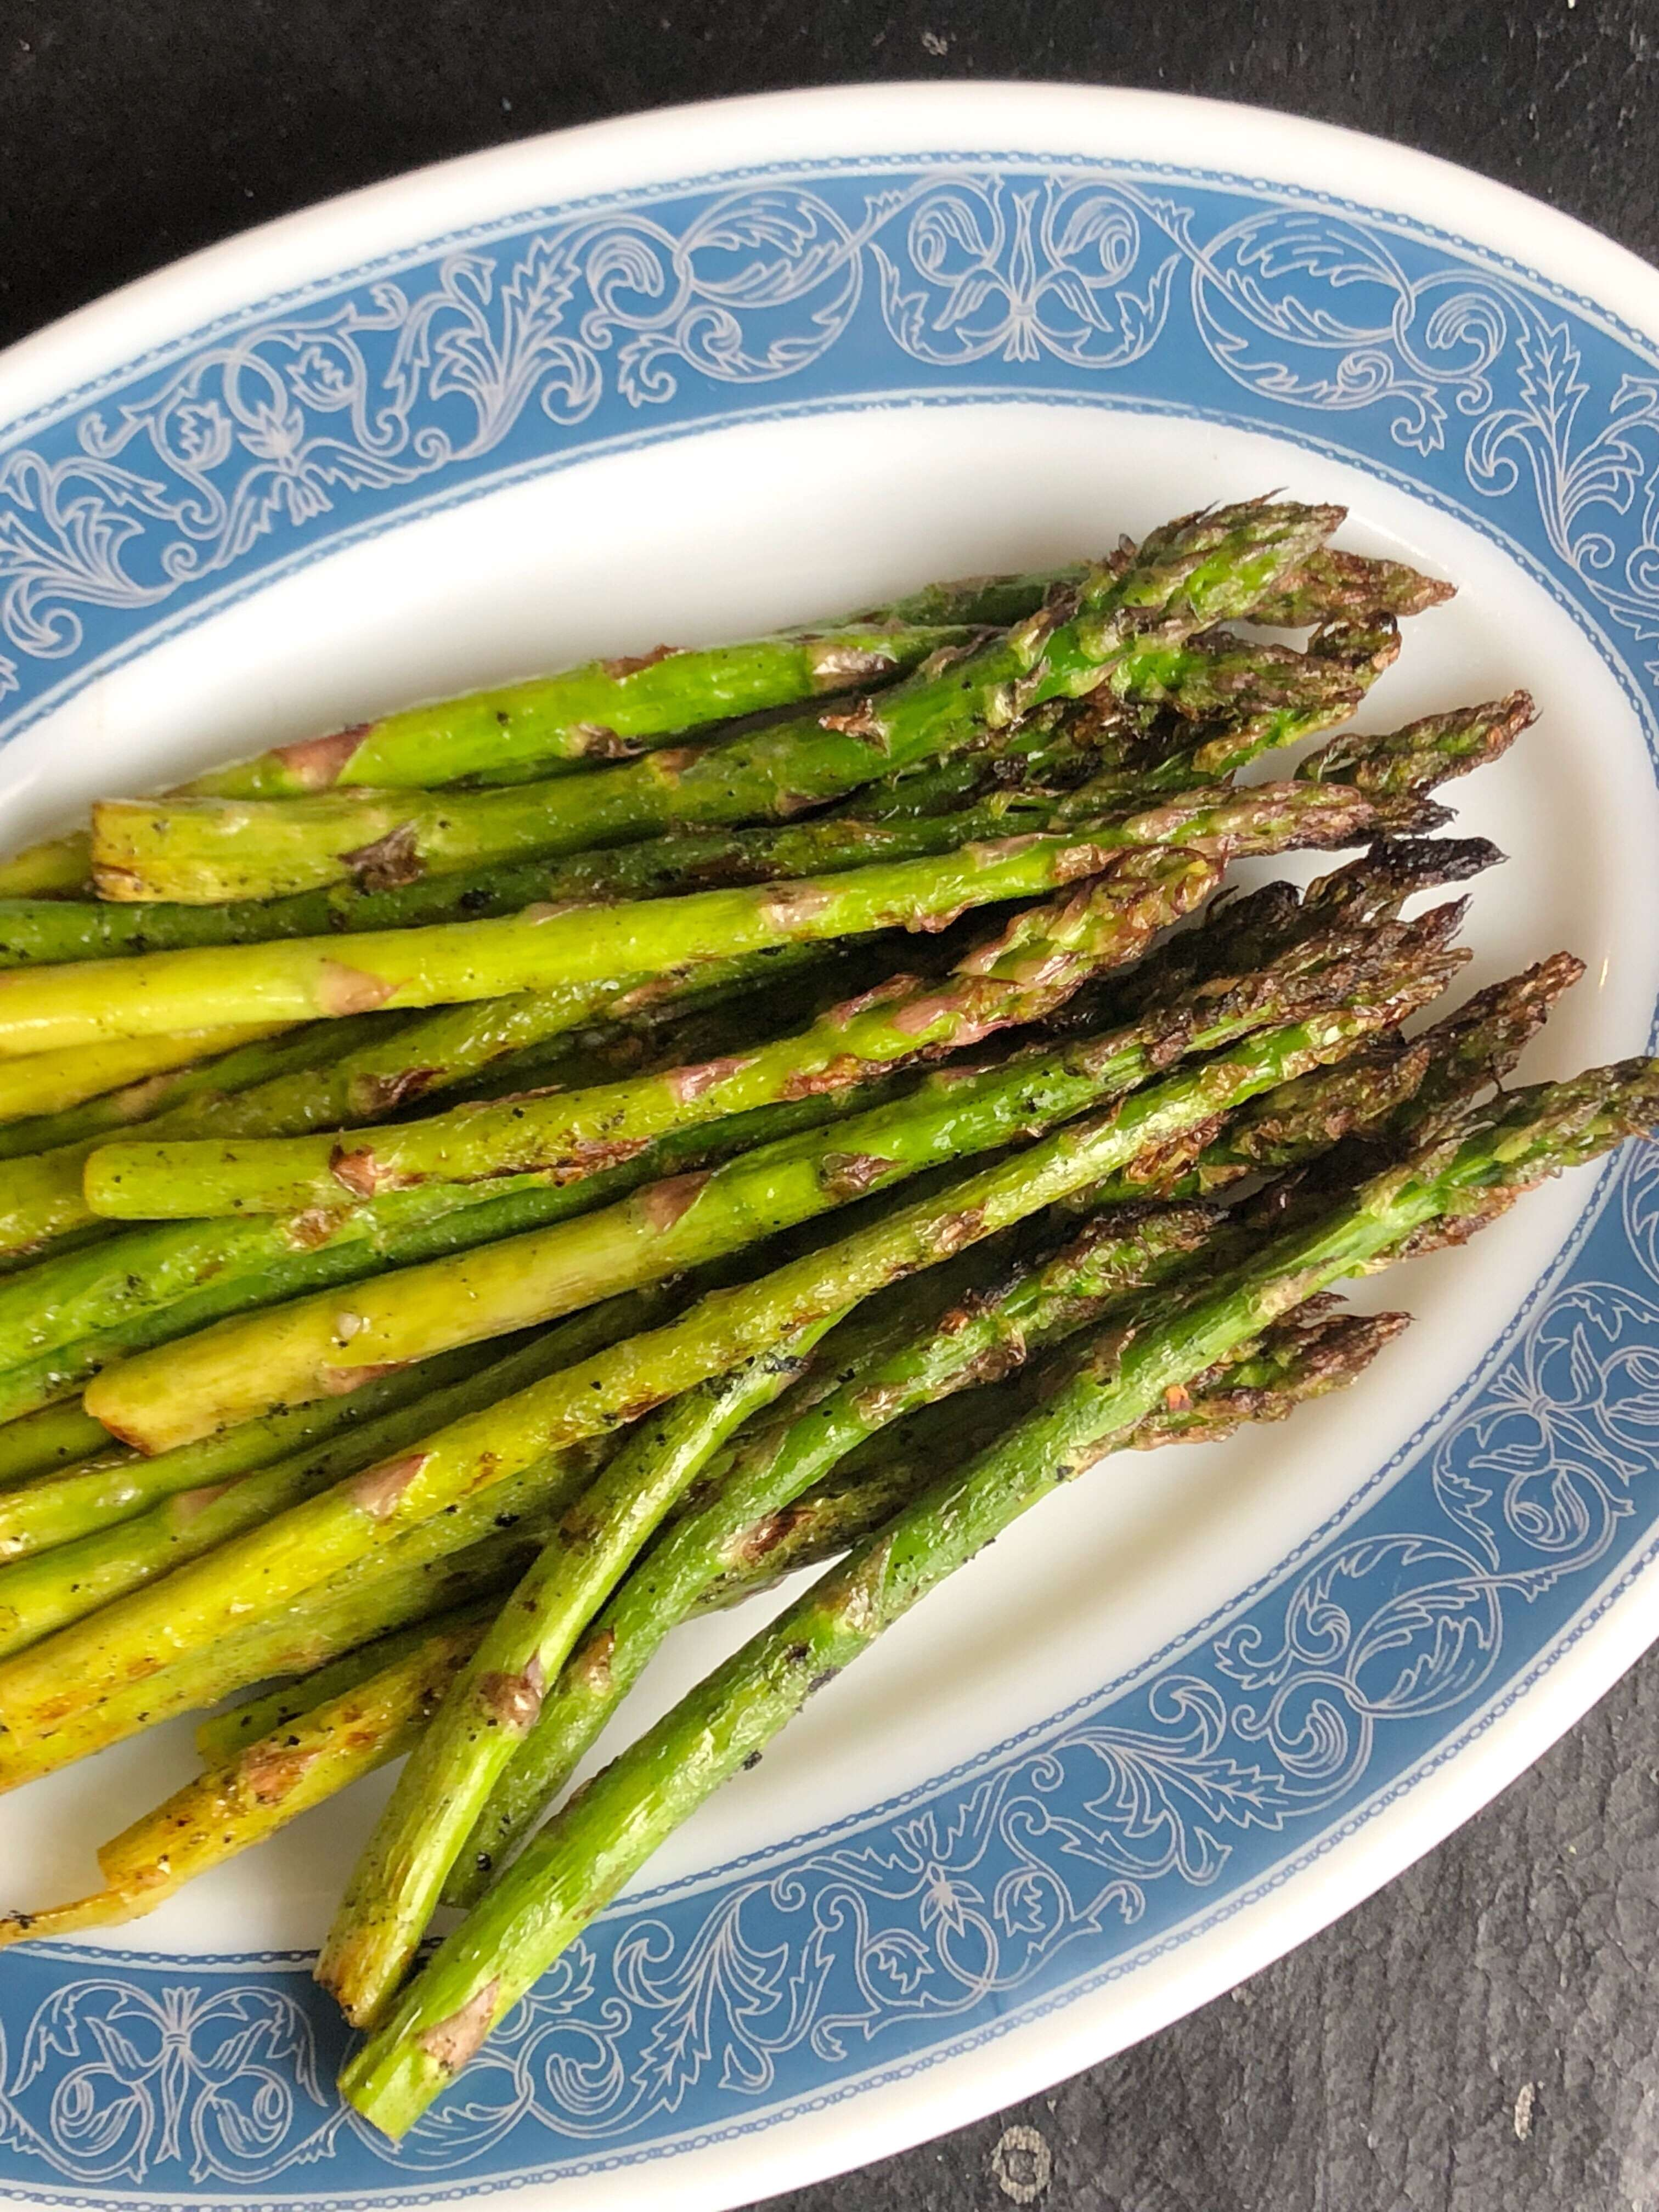 Garlic and Olive OIl Grilled Asparagus Served on a Platter